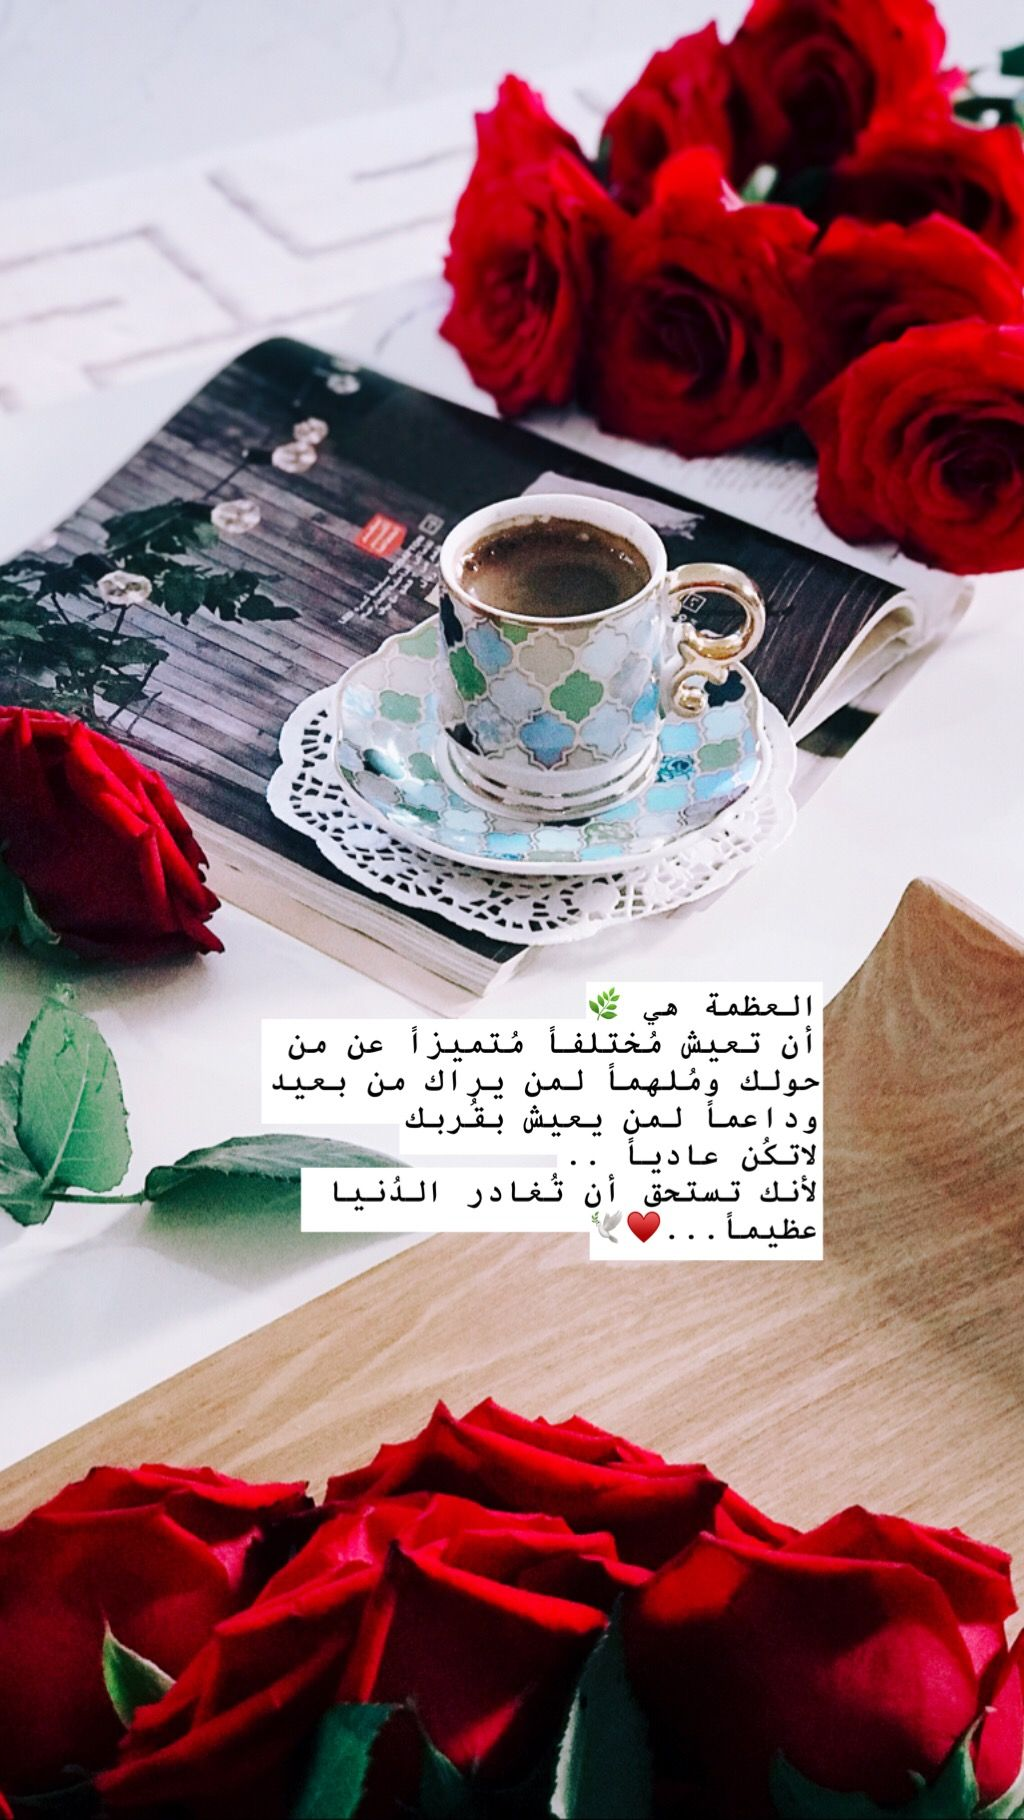 Insta Hind99alsalem Arabic Quotes Arabic Words Snapchat